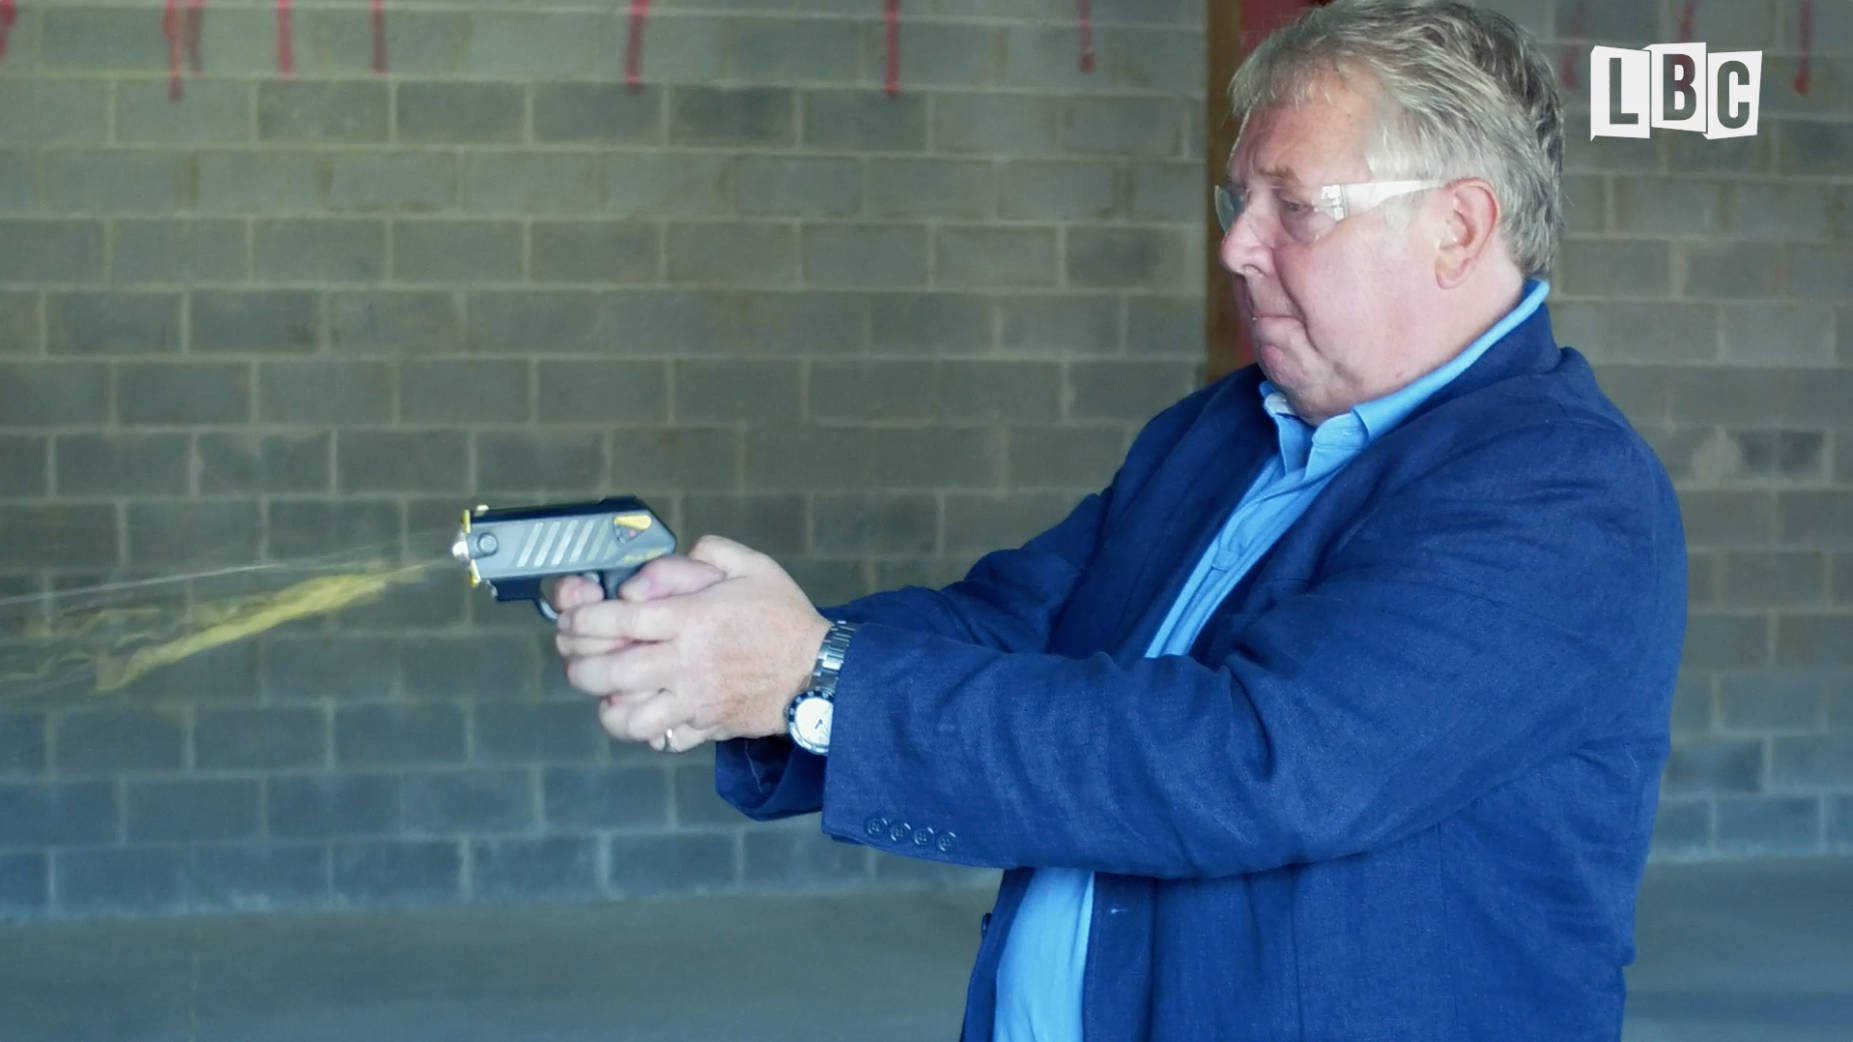 WATCH: Nick Ferrari Goes On A Taser Training Course